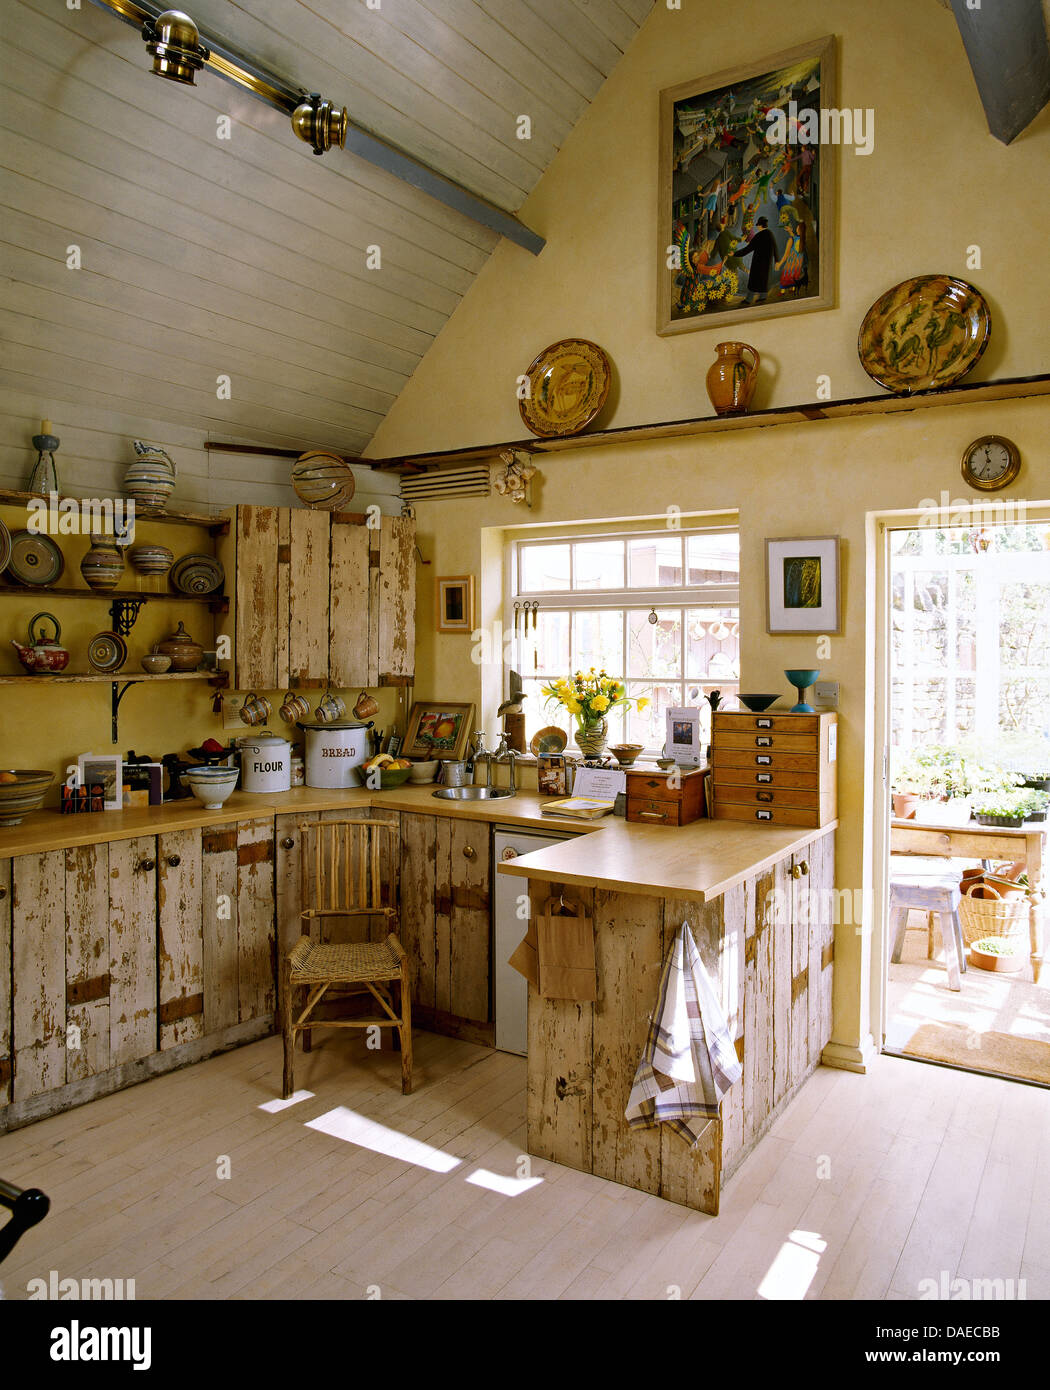 Rustic Country Kitchen rustic country kitchen with salvaged wood cupboards, a pitched